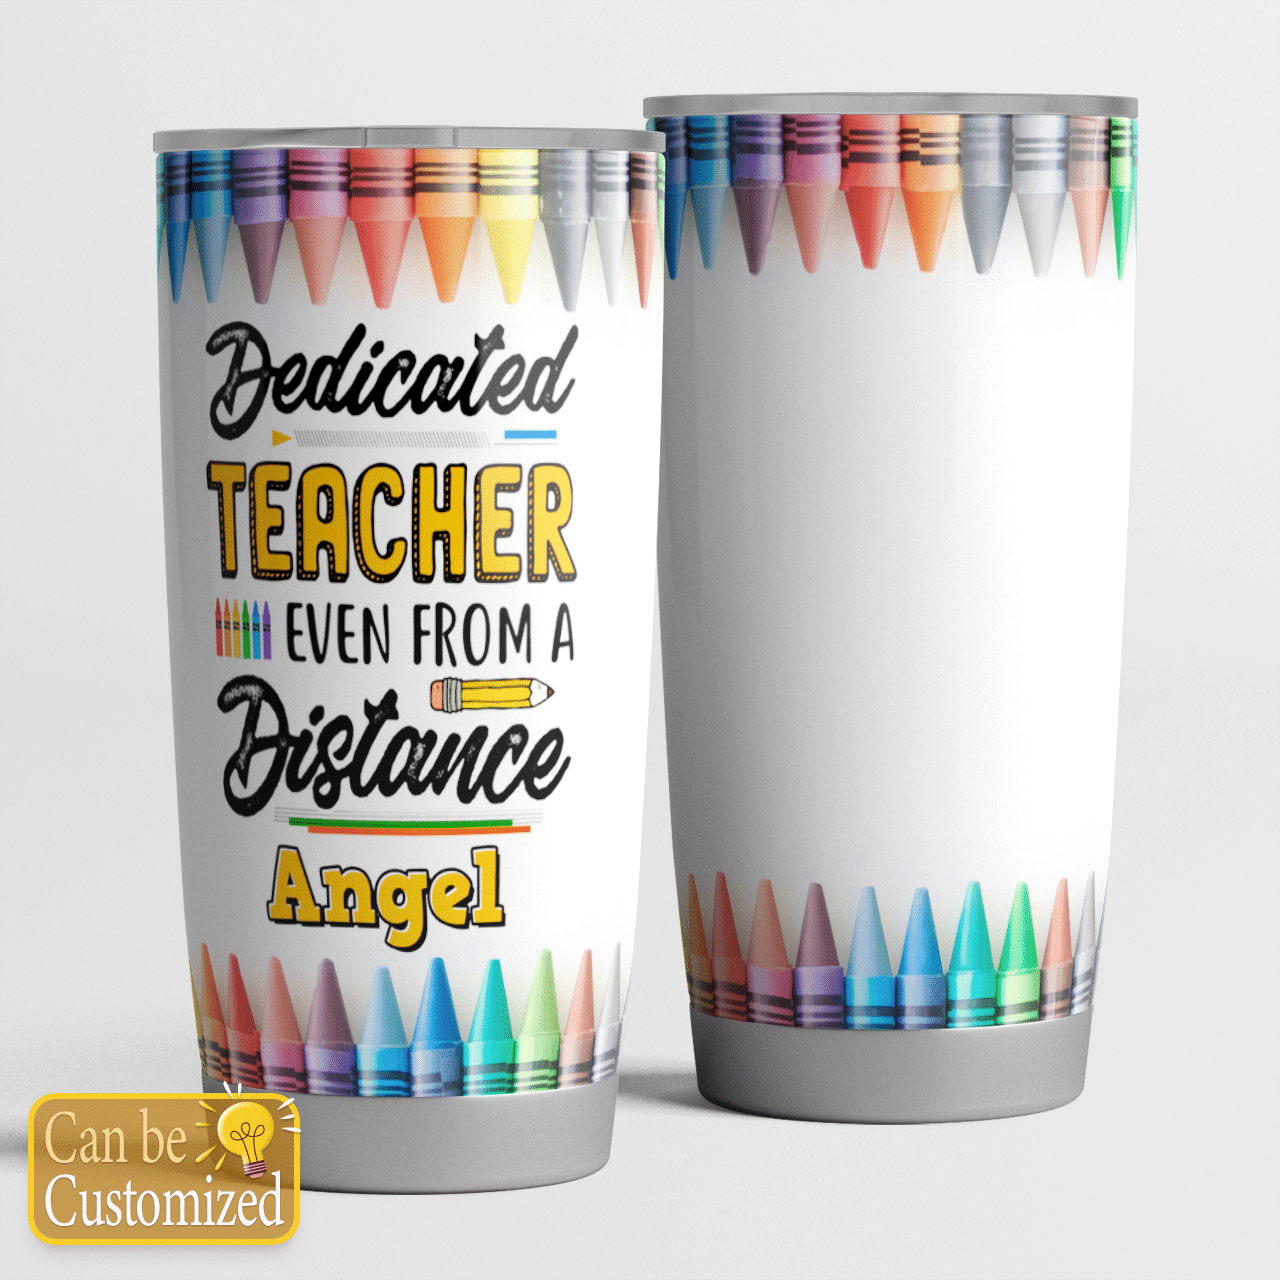 Dedicated Teacher Personalized